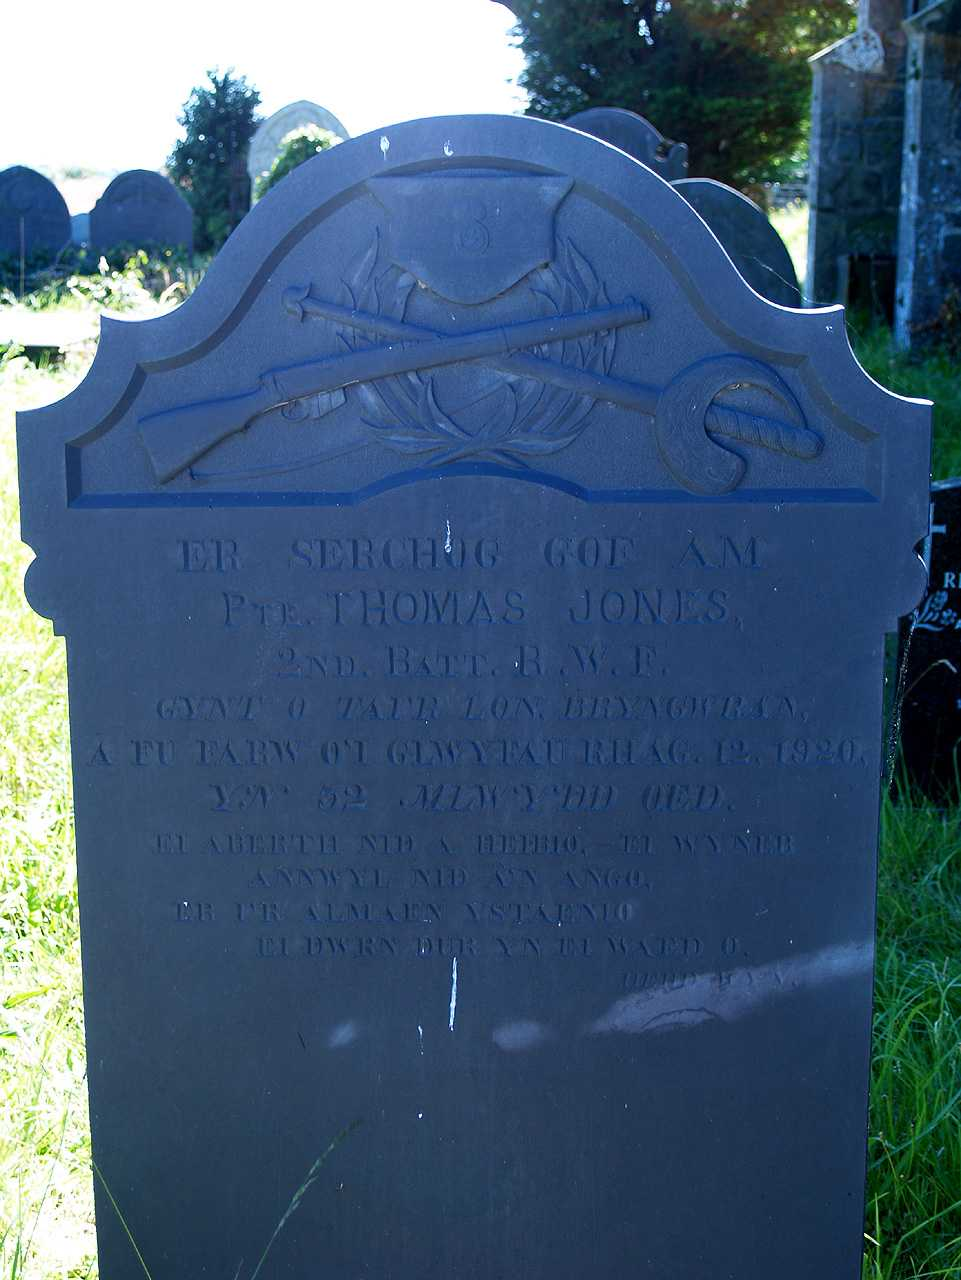 Anglesey, Bryngwran, Holy Trinity Church, WWI Memorial to Private Thomas Jones aged 32